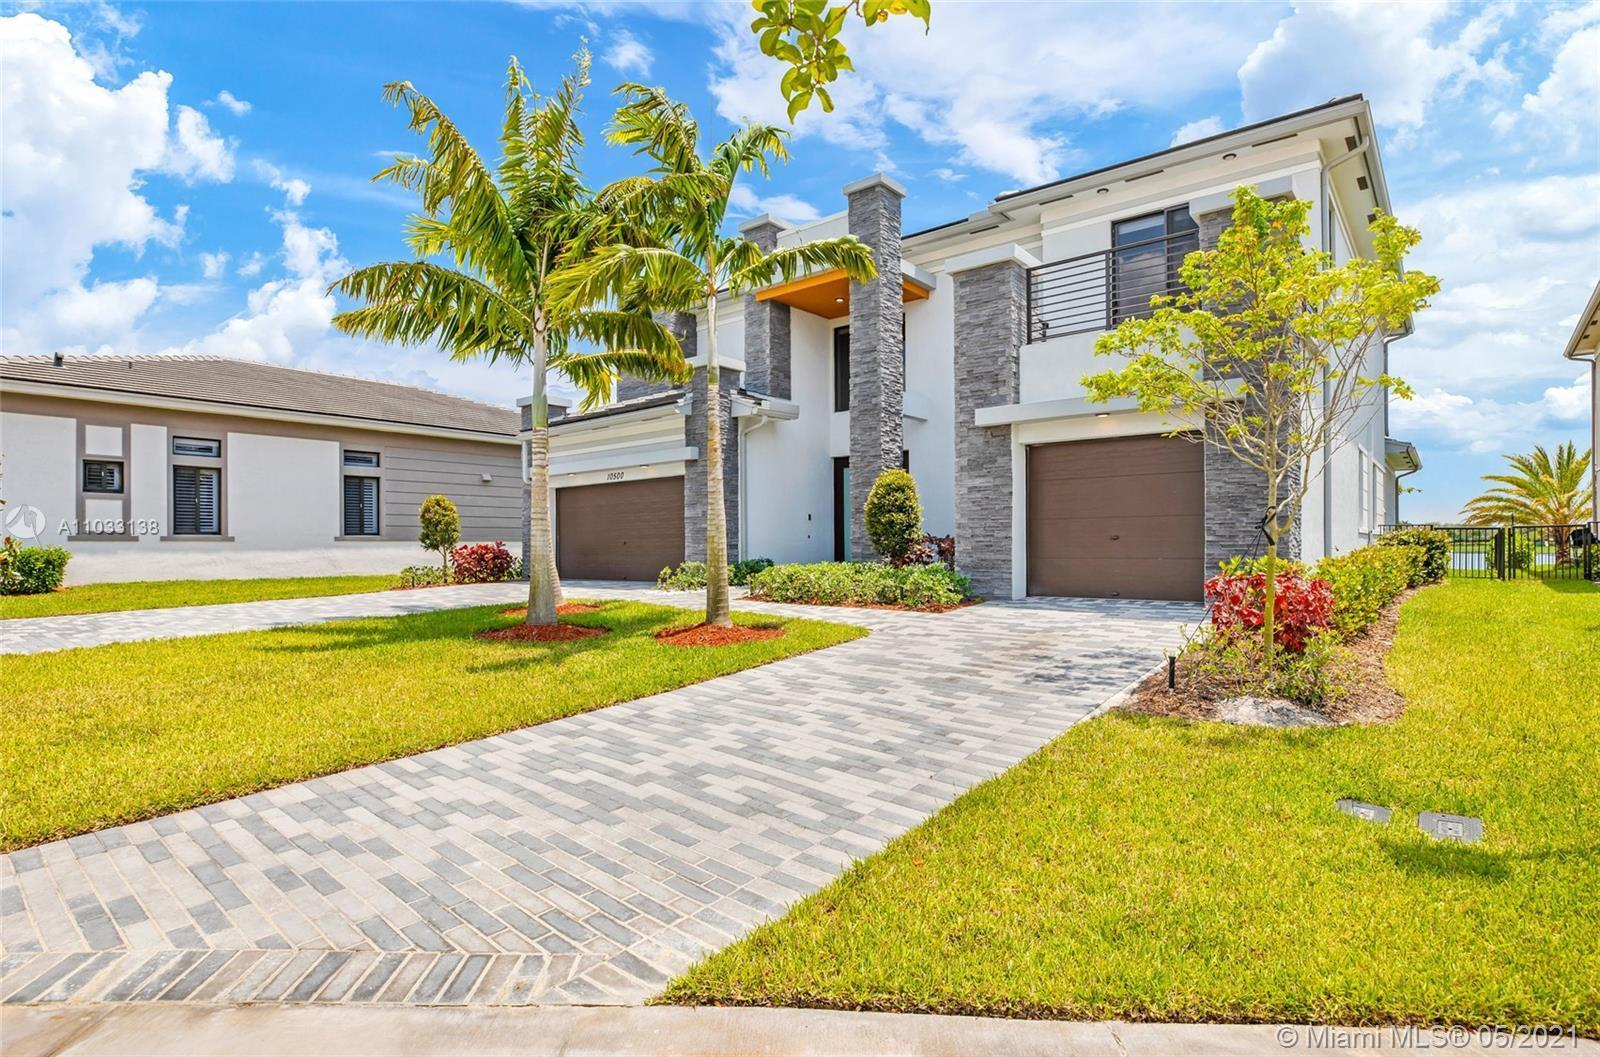 10500 Mira Vista Dr , Parkland, Single-Family Home,  for sale, Guillermo Paez Jimenez   P.A.     GRI, C2, Realty World FDR Realty Group